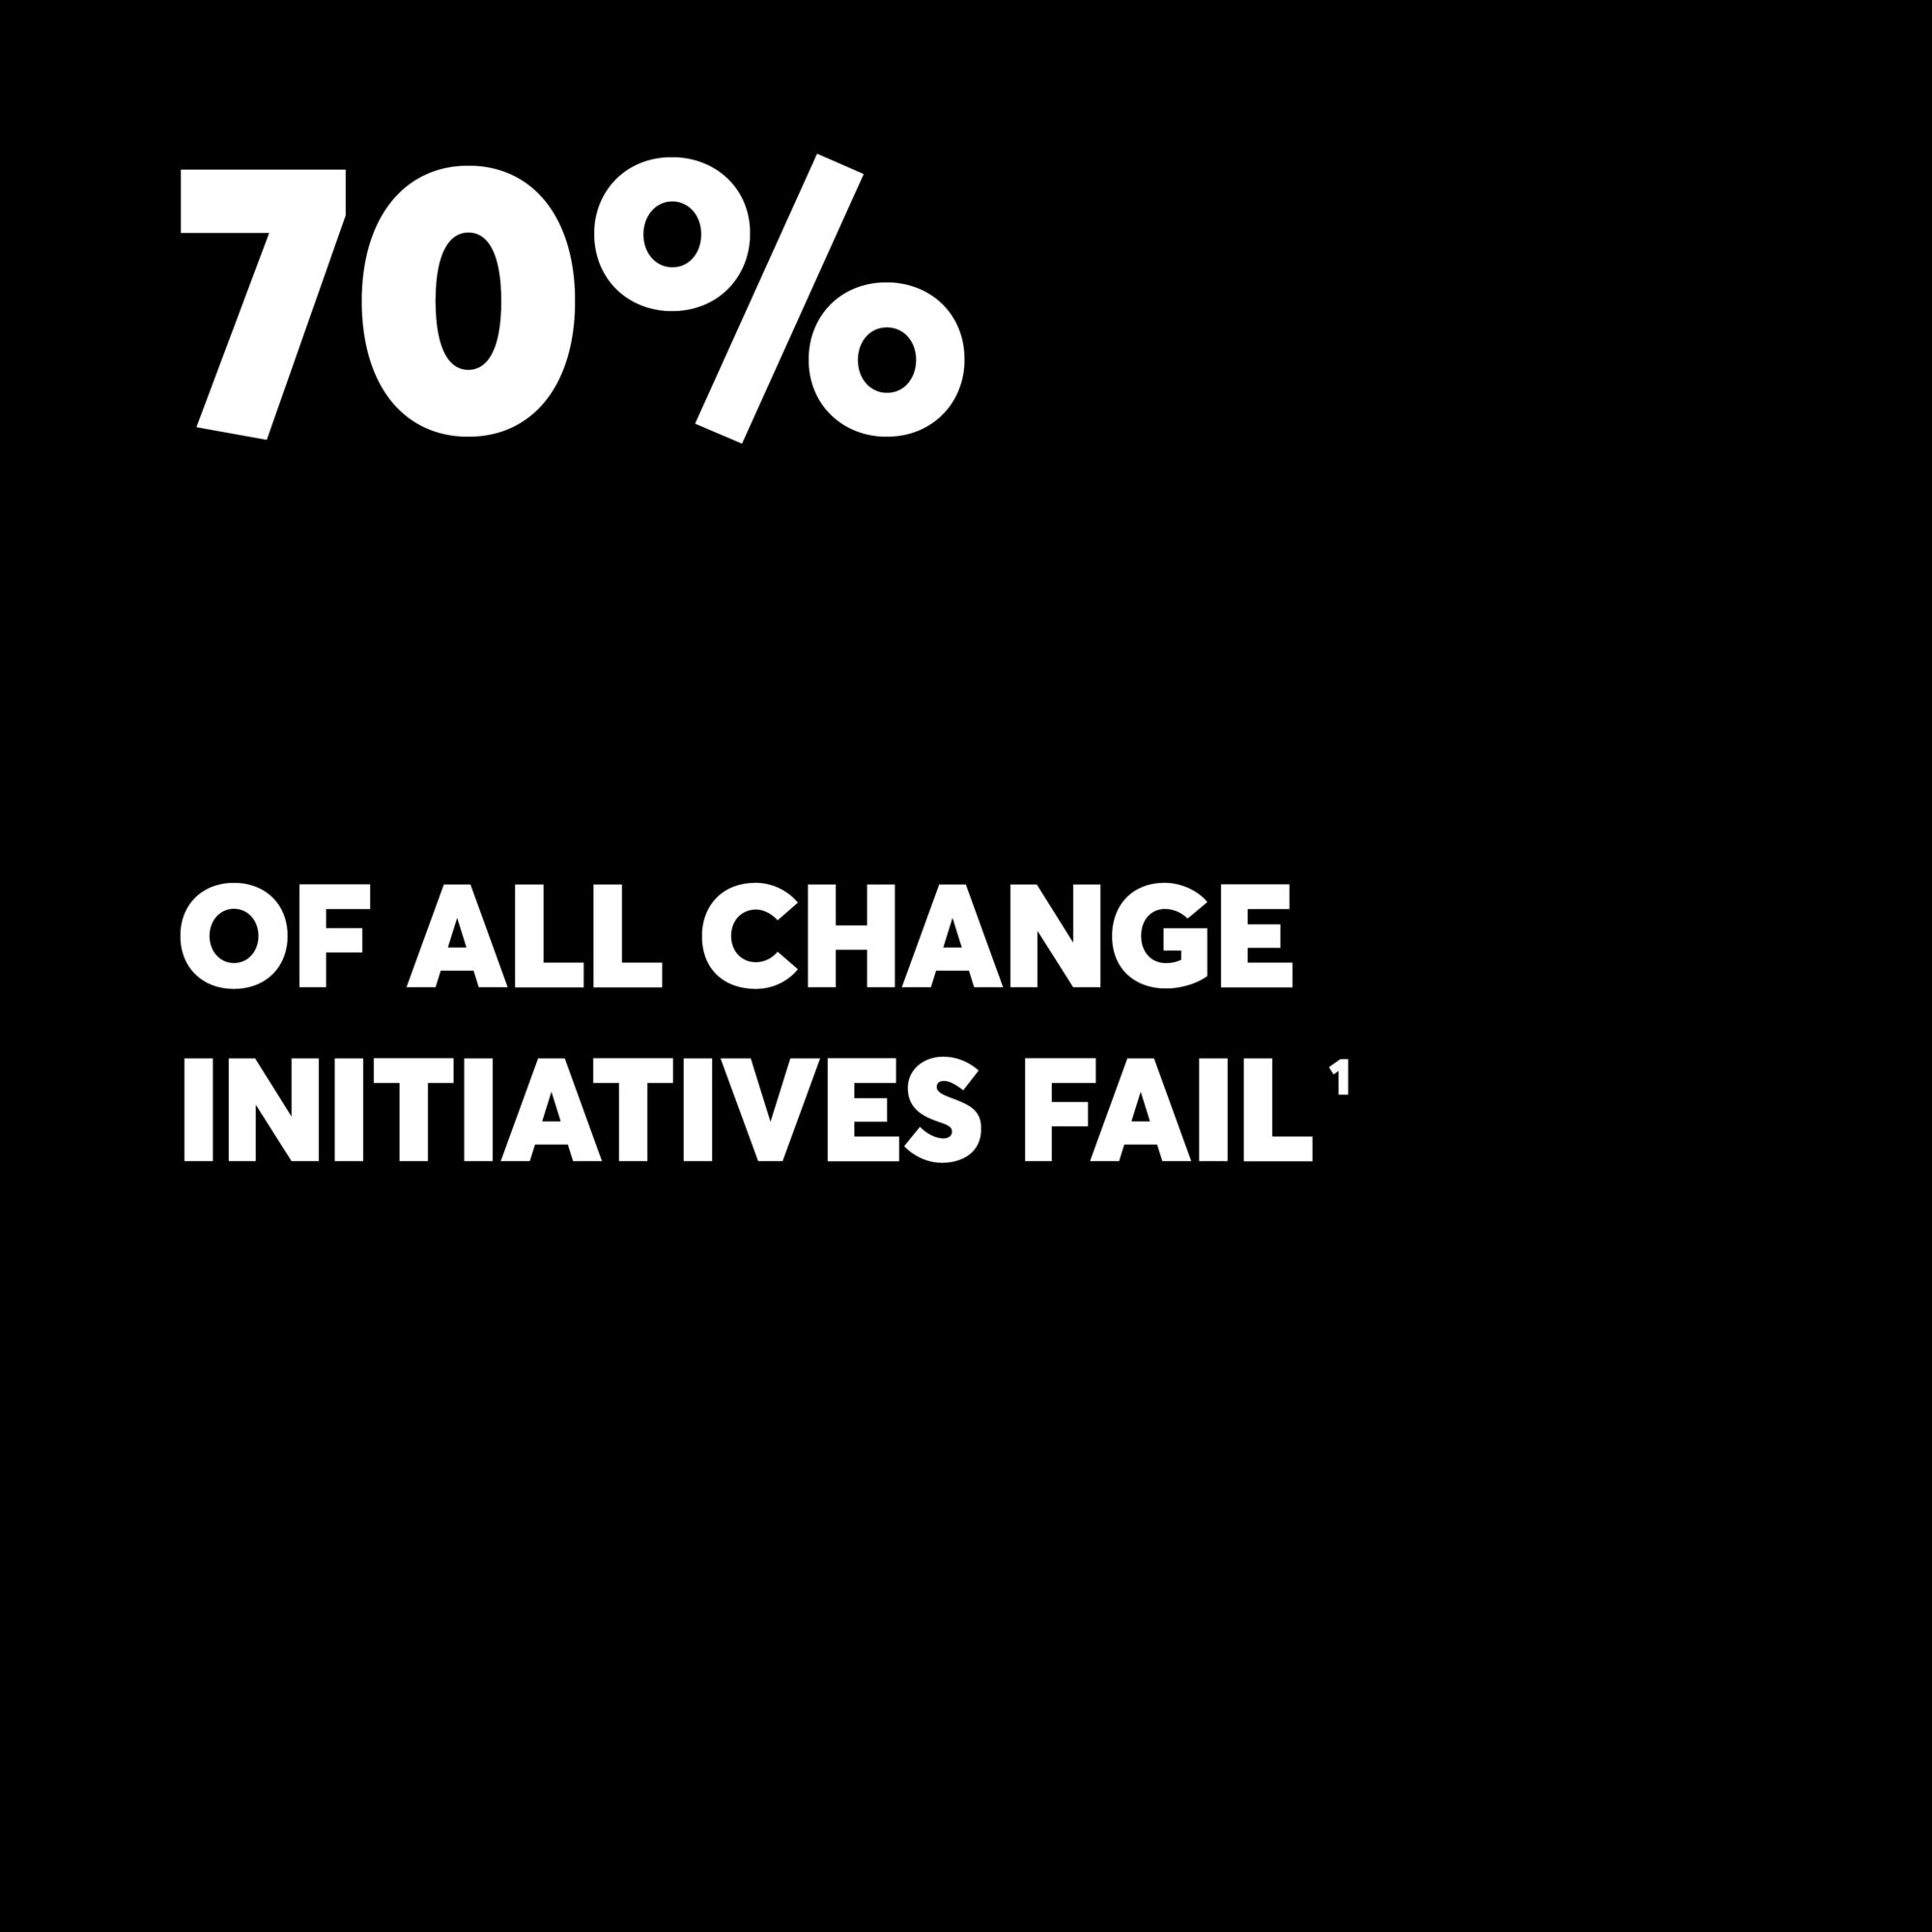 white text on black background saying 70% of all change initiatives fail